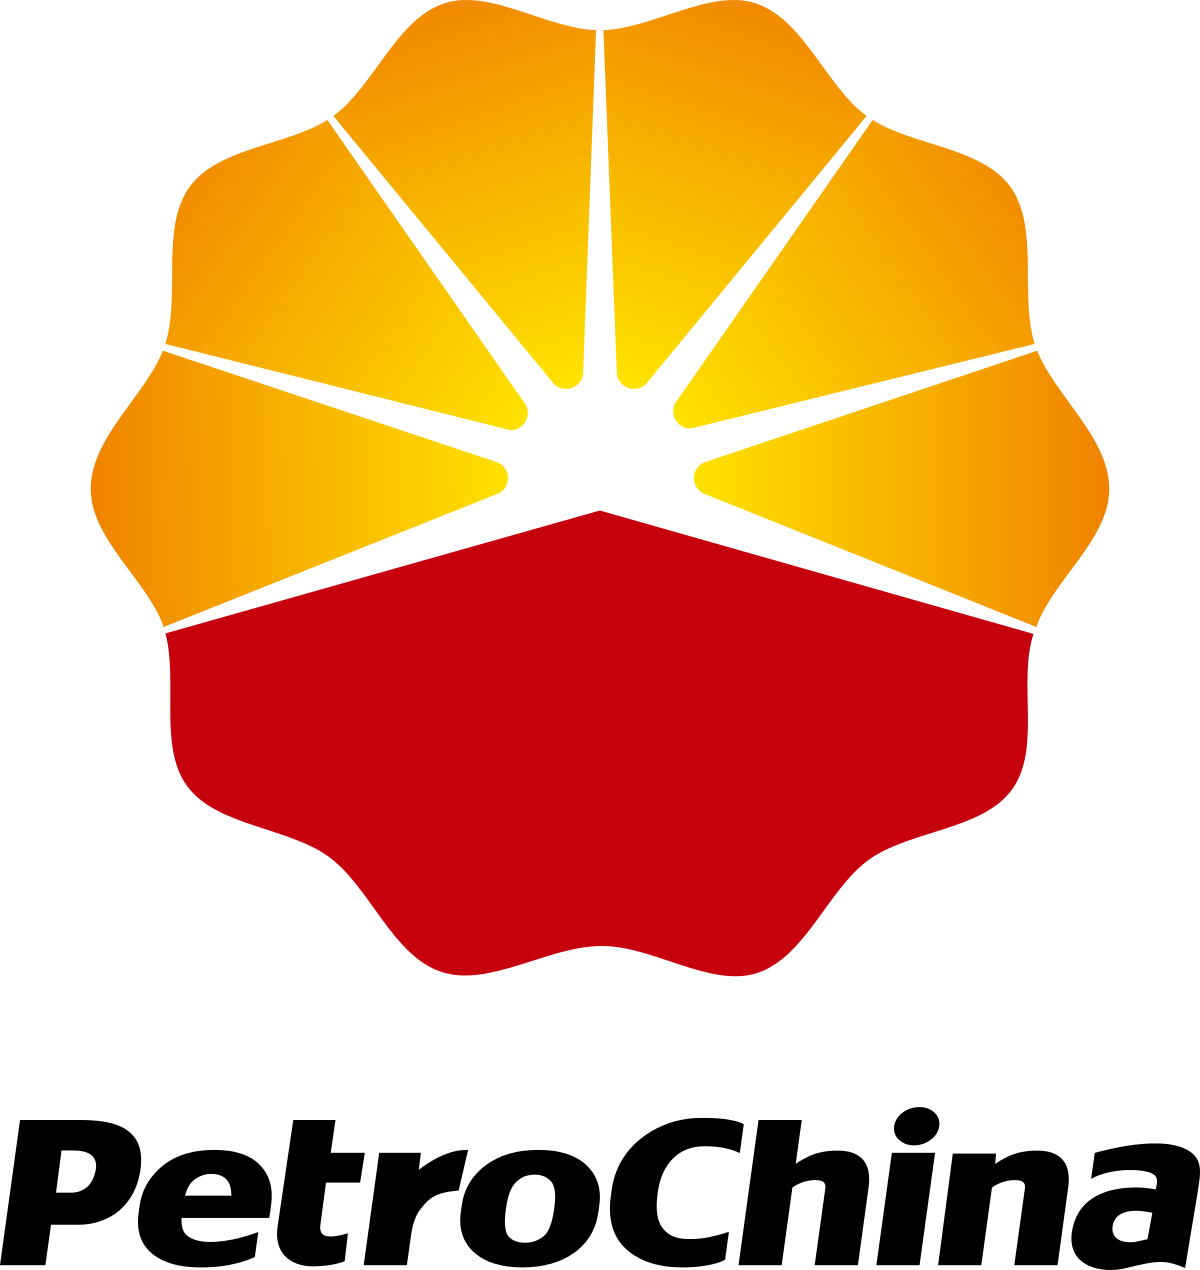 Petrochina Company Limited 601857 Icon Logo